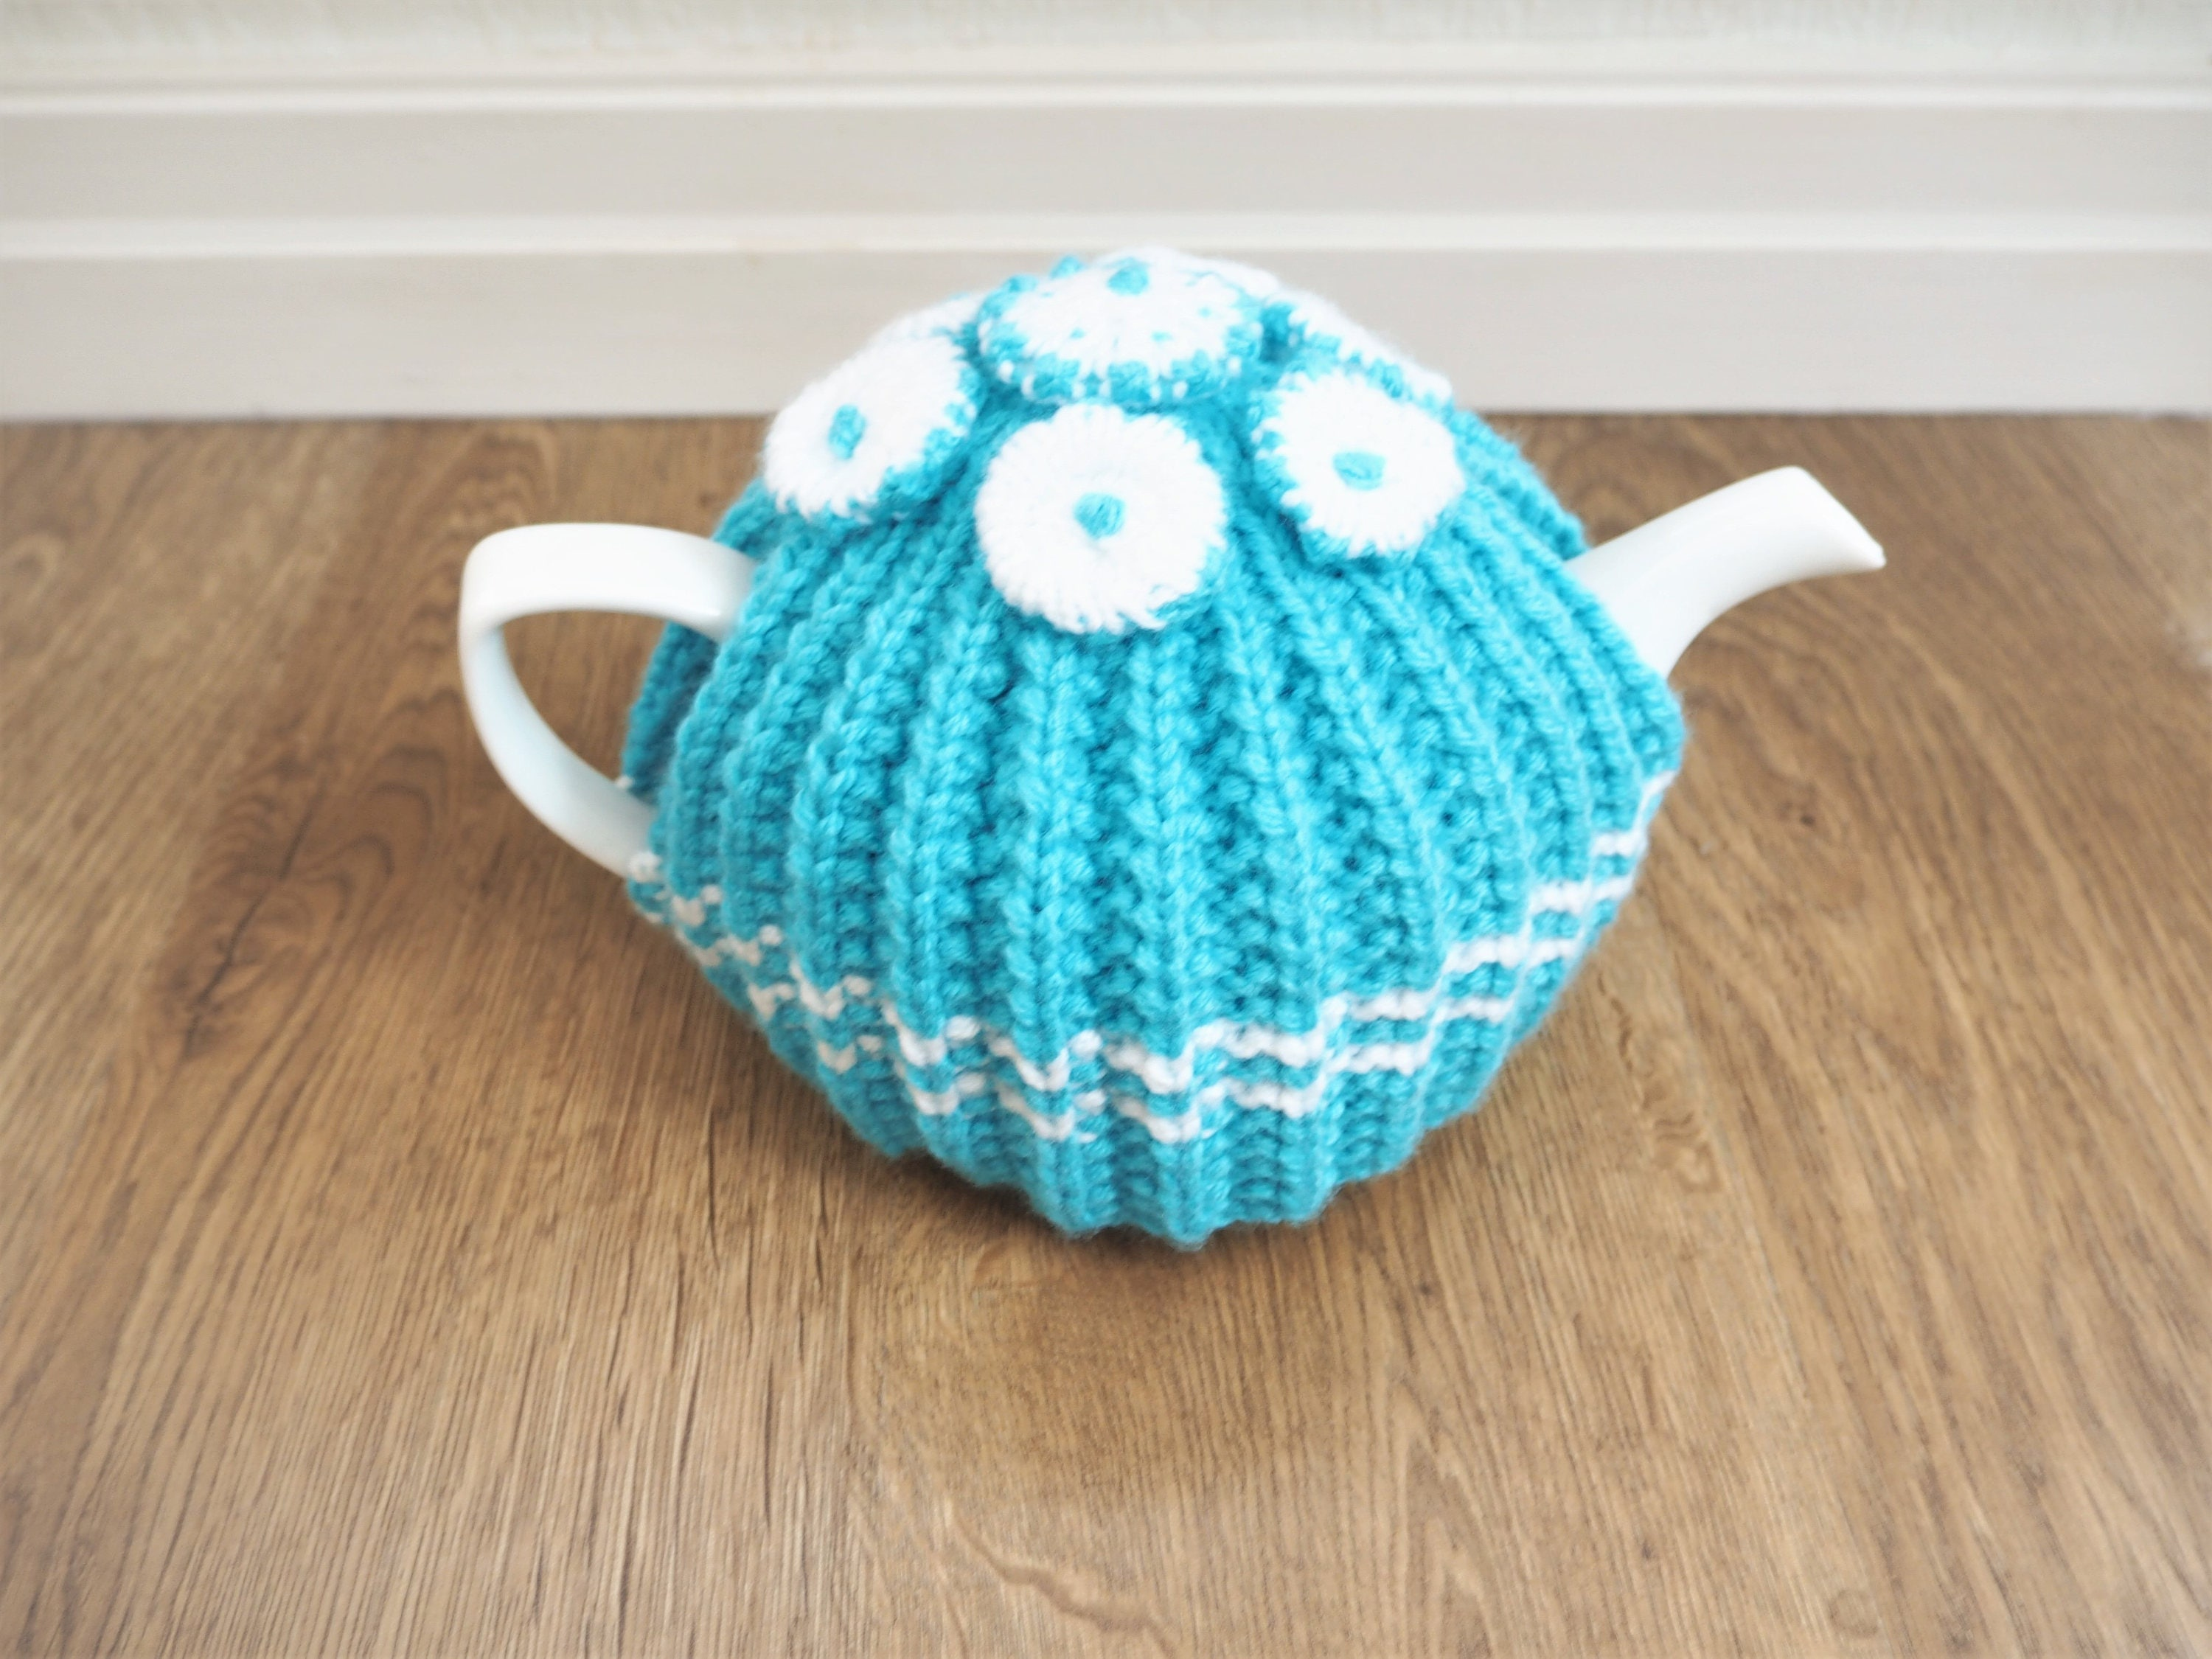 Turquoise and White Tea Cosy  Blue  White Tea Cosy  Floral Tea Cosy  Medium Tea Cosy  (Ready to Post)